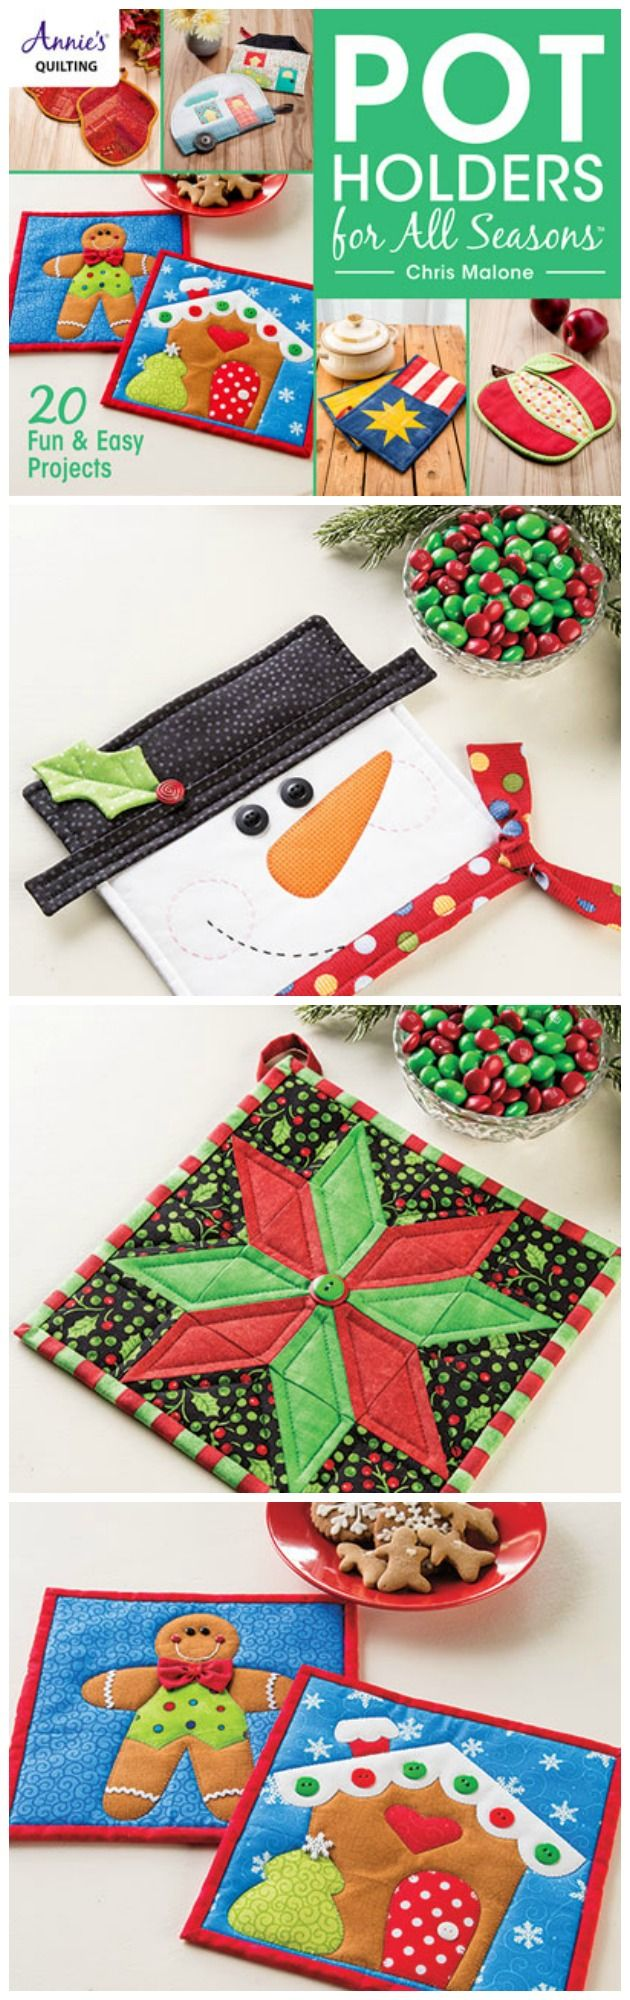 2- potholder sewing patterns.  Love these Christmas ones.  Great ideas to sew for gifts and stocking stuffers.